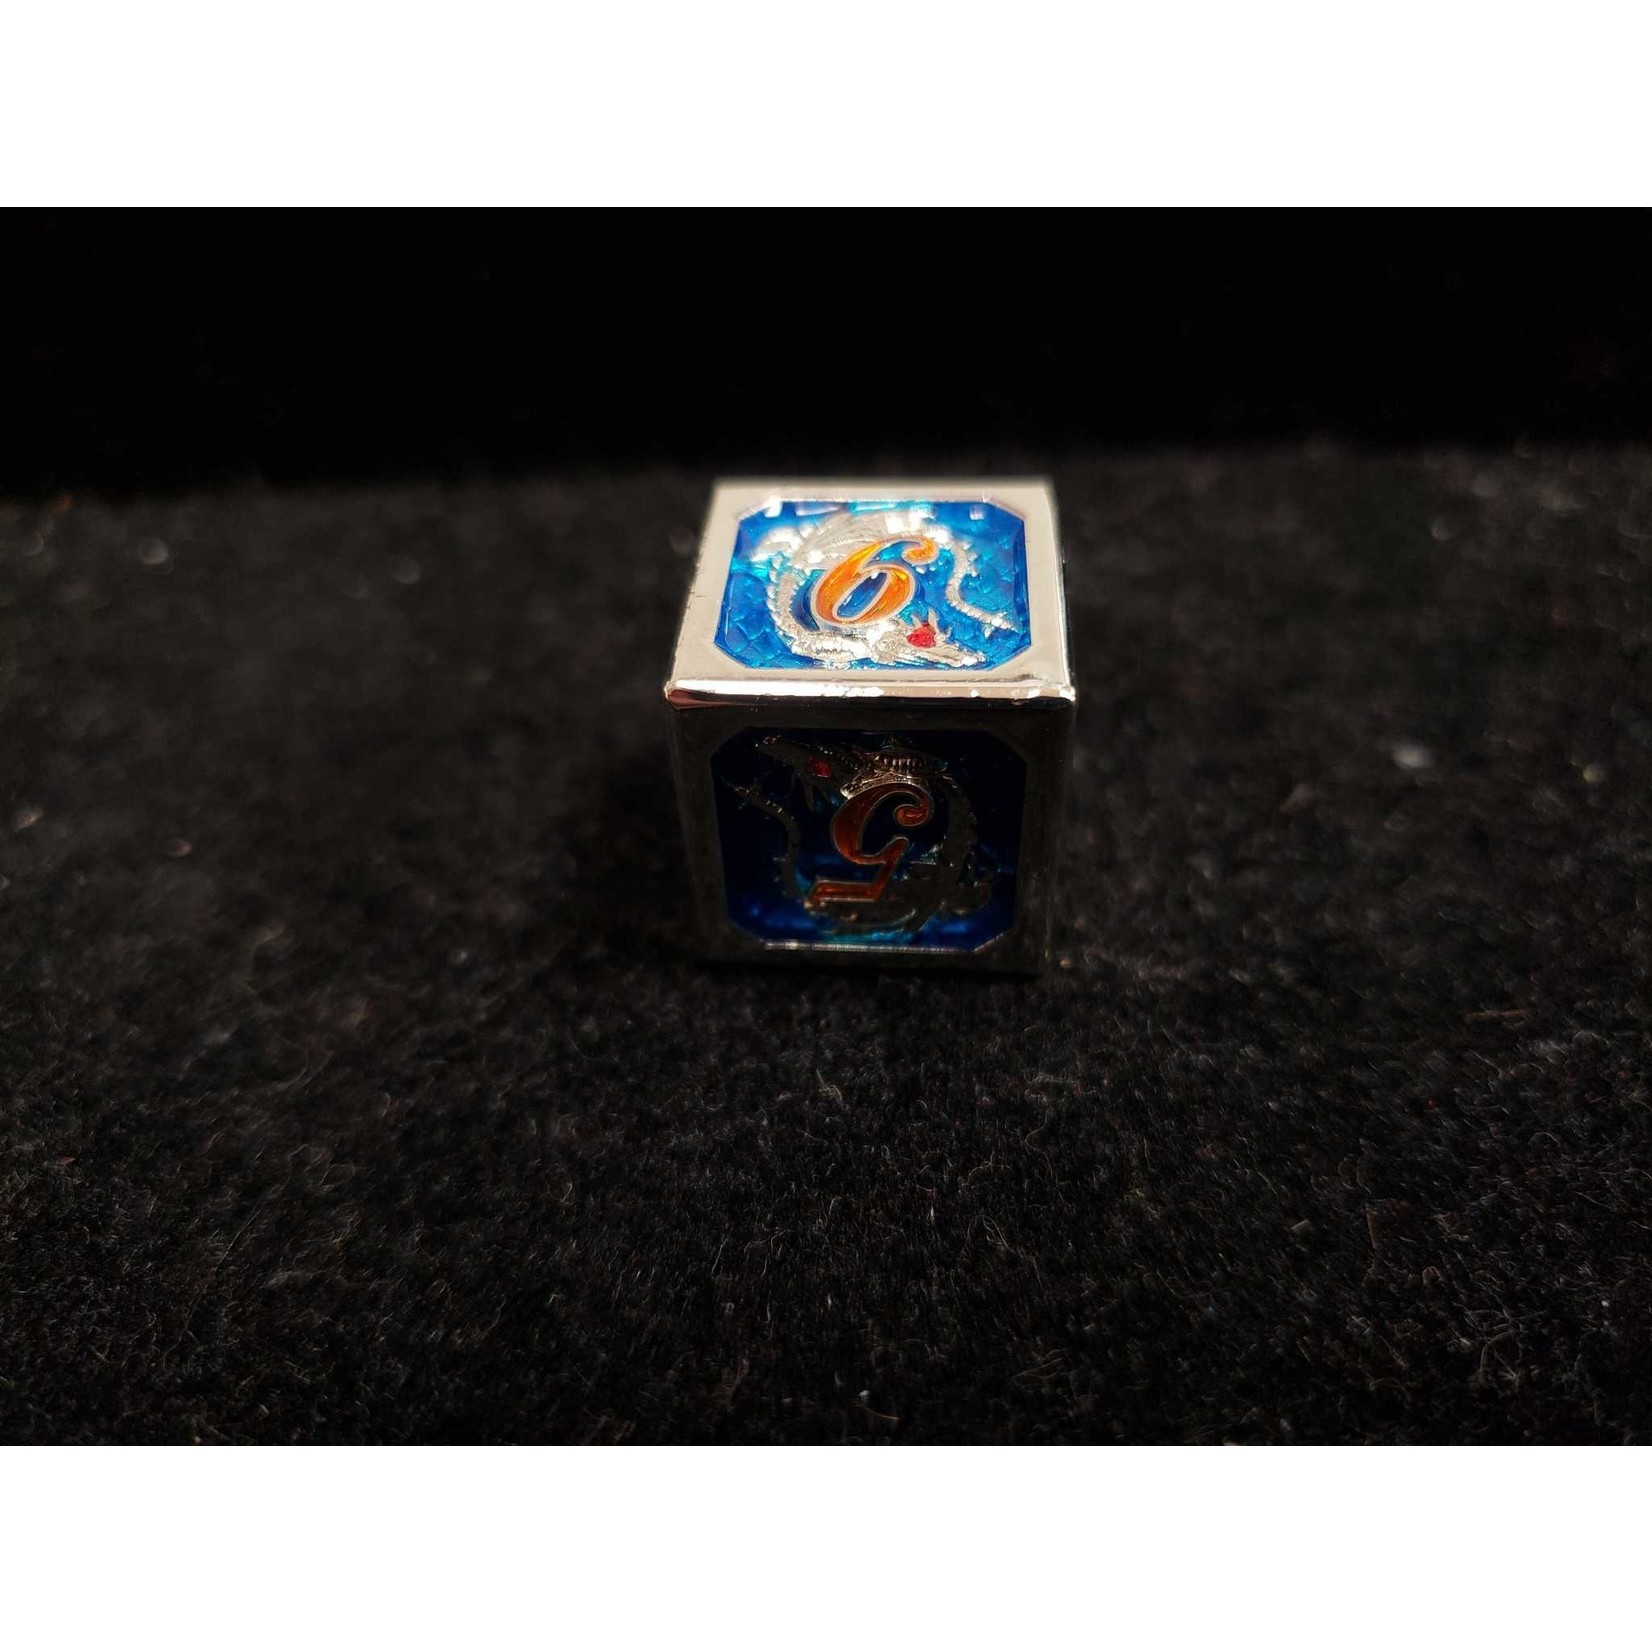 Hymgho Dice US Hymgho: D6 Silver and Blue with Orange Lettering Solid Metal Dragon Die